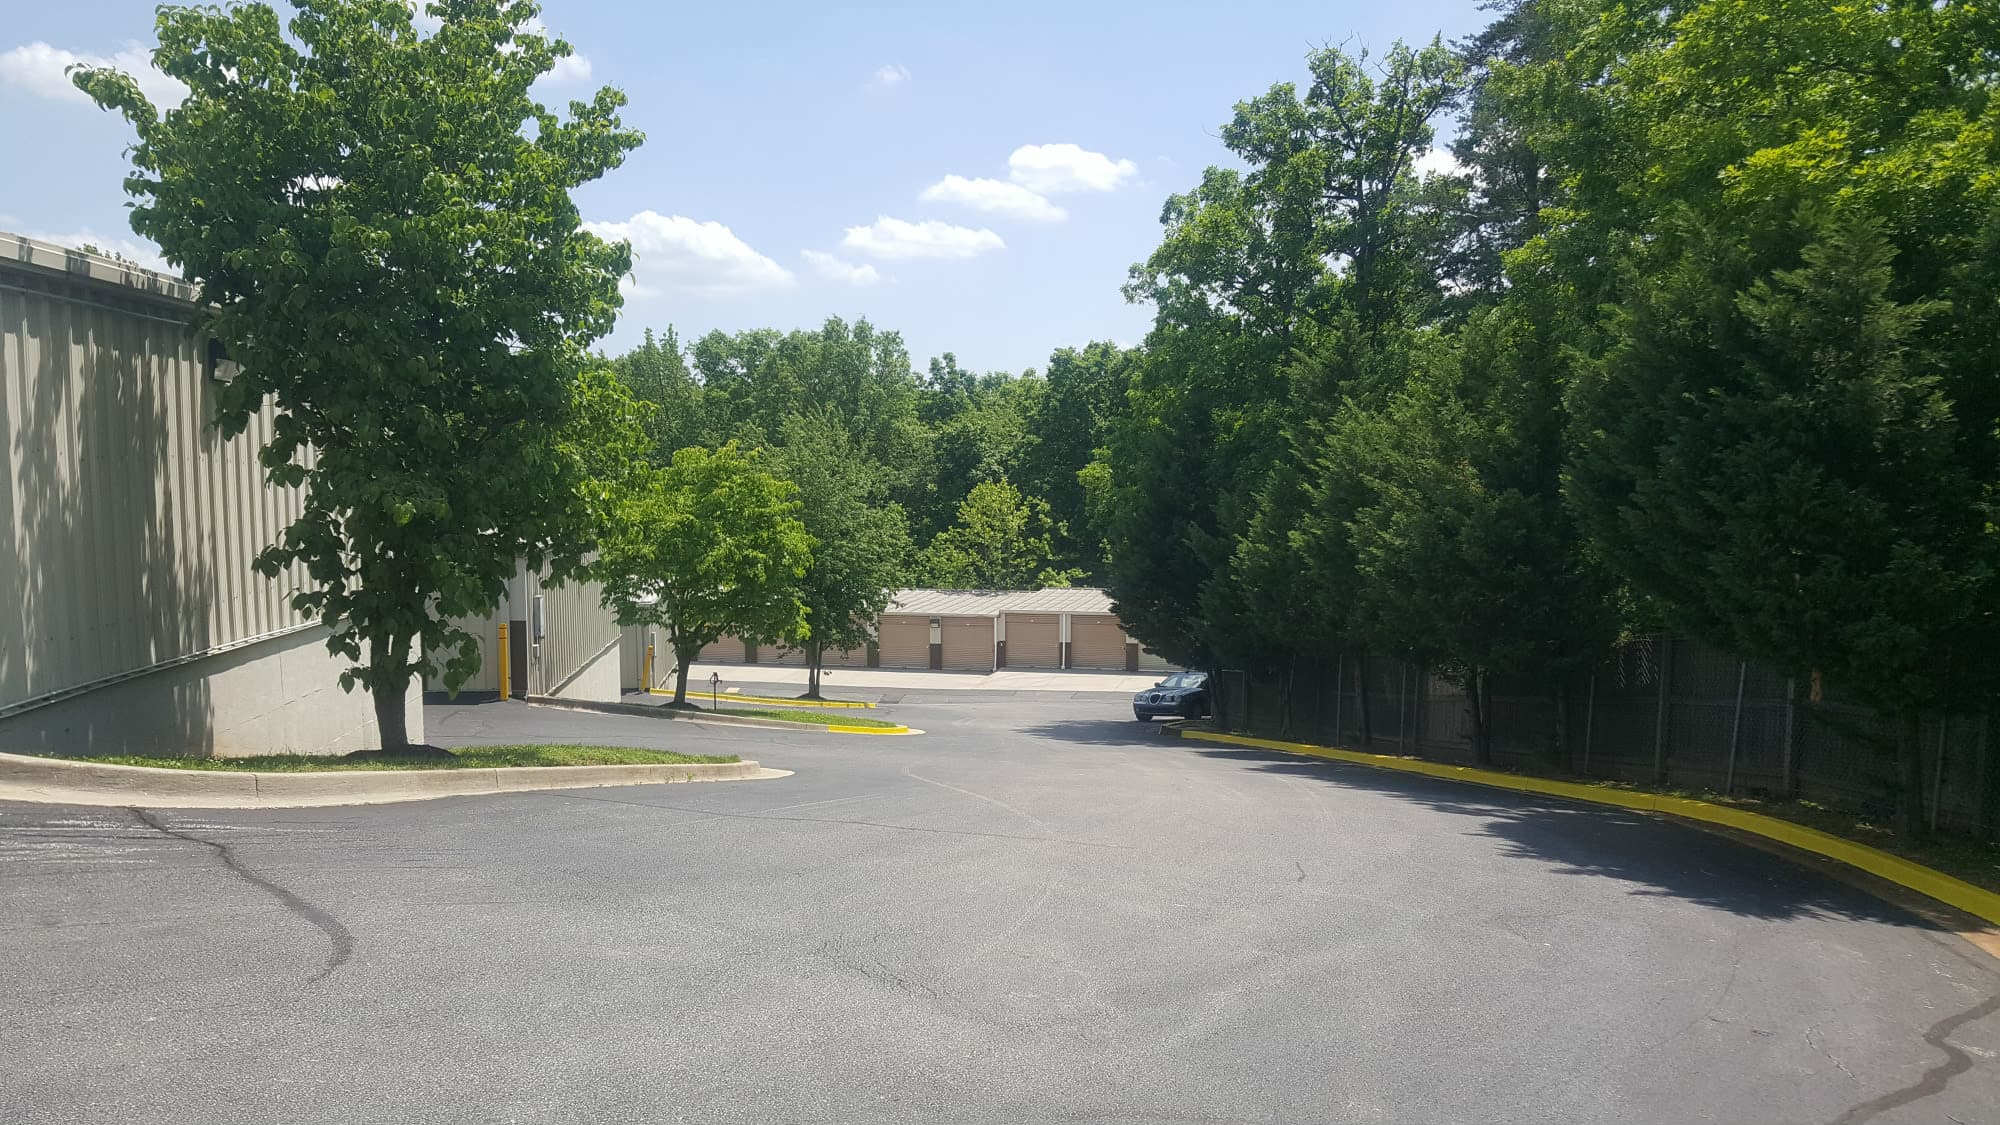 Tree-lined grounds at Seabrook Self Storage in Seabrook, Maryland